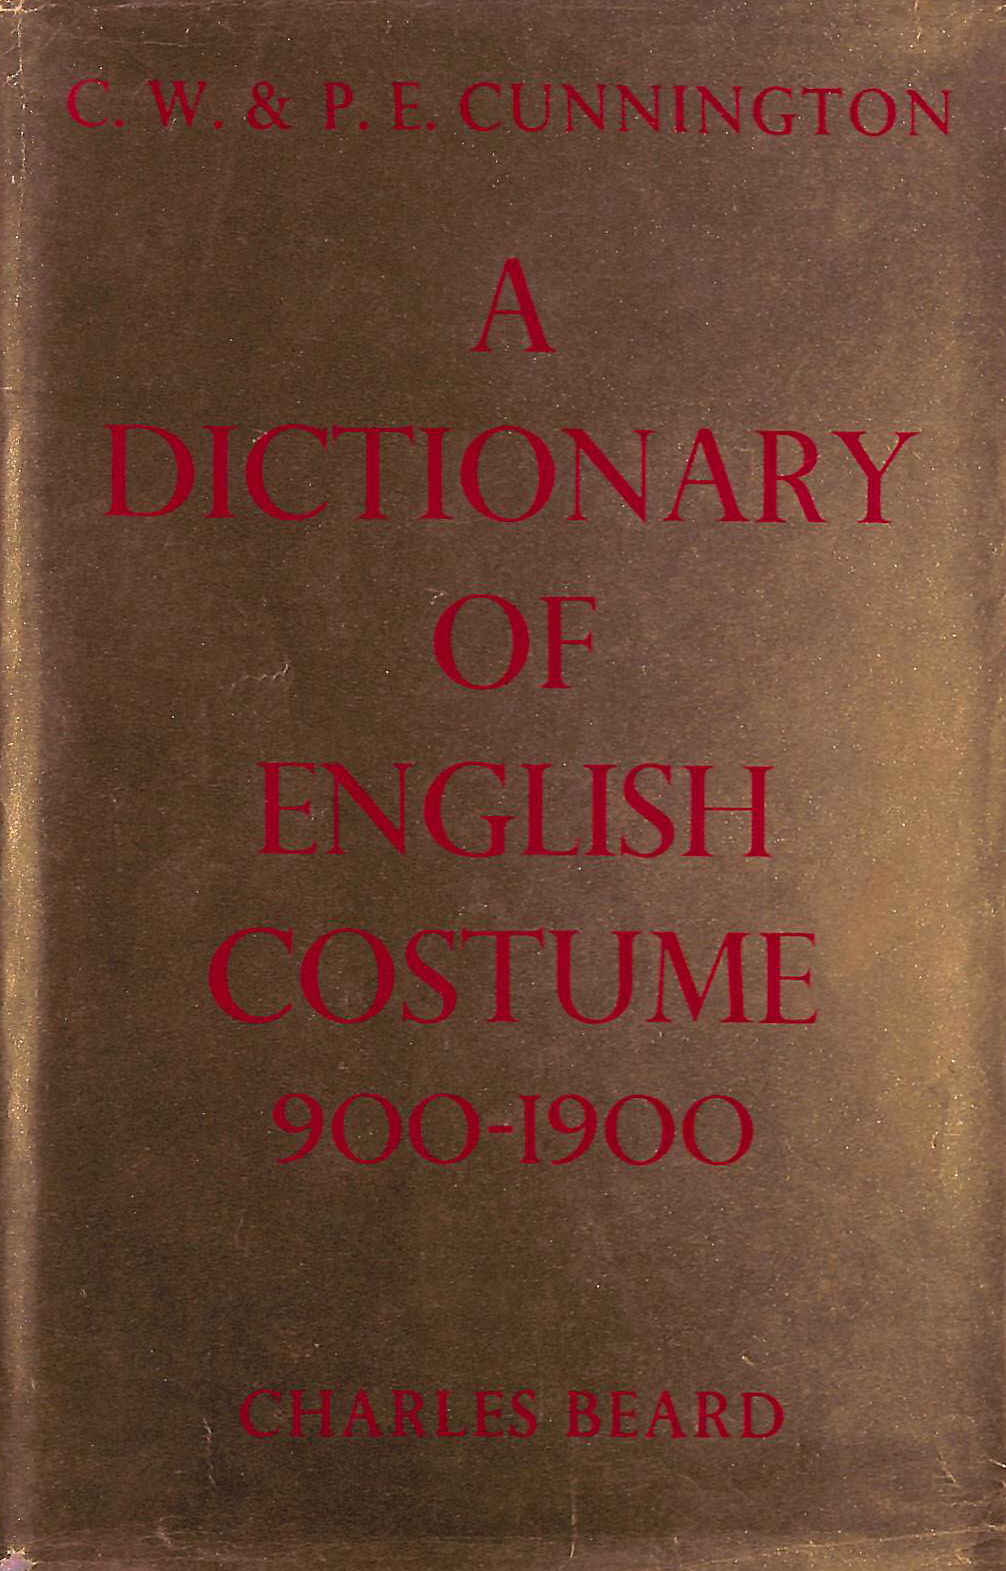 Image for Dictionary of English Costume 900-1900